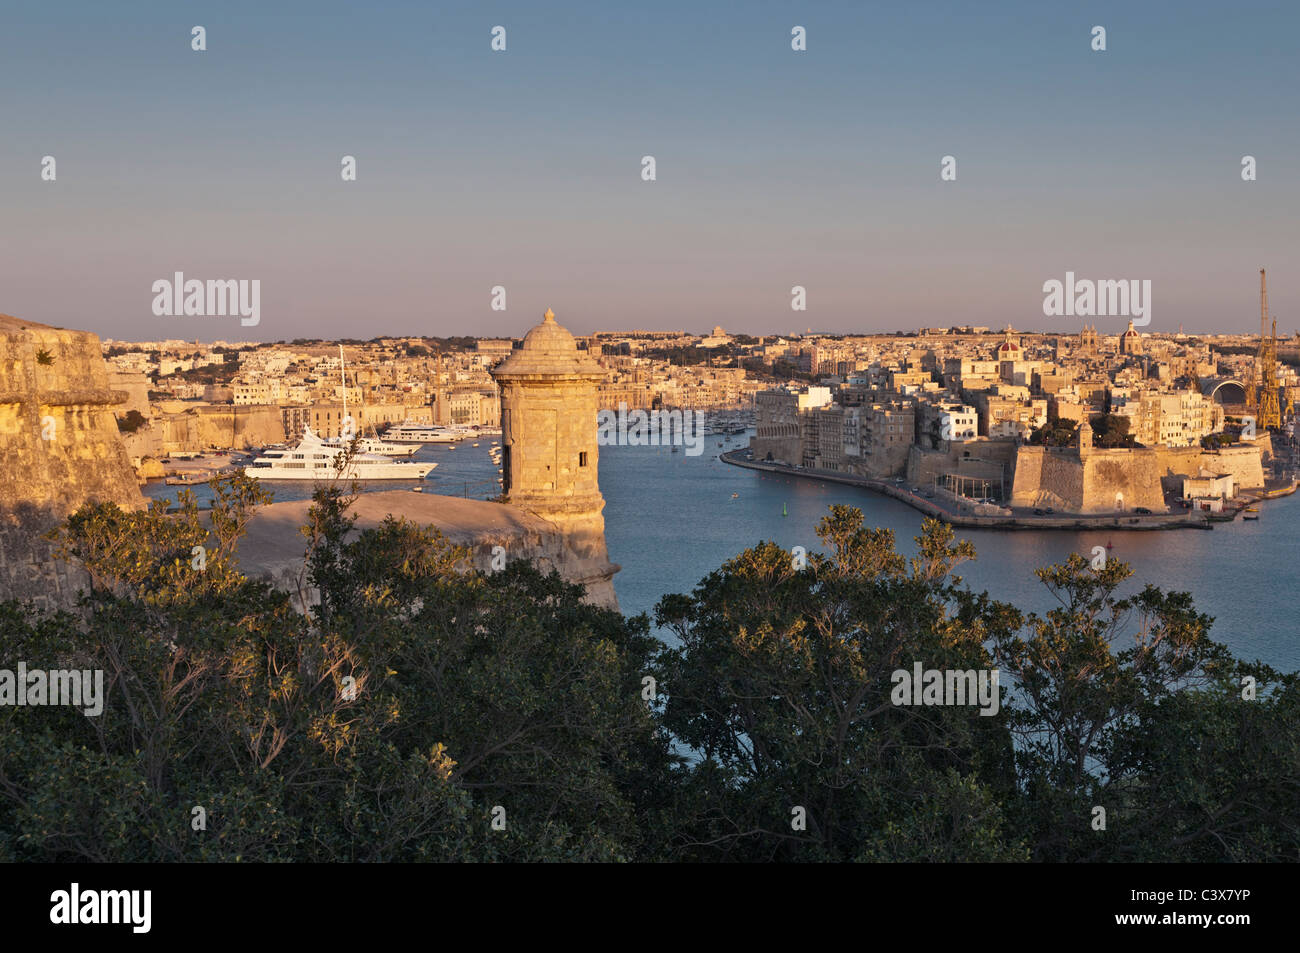 Sentry post and view to Grand Harbour Valletta Malta - Stock Image